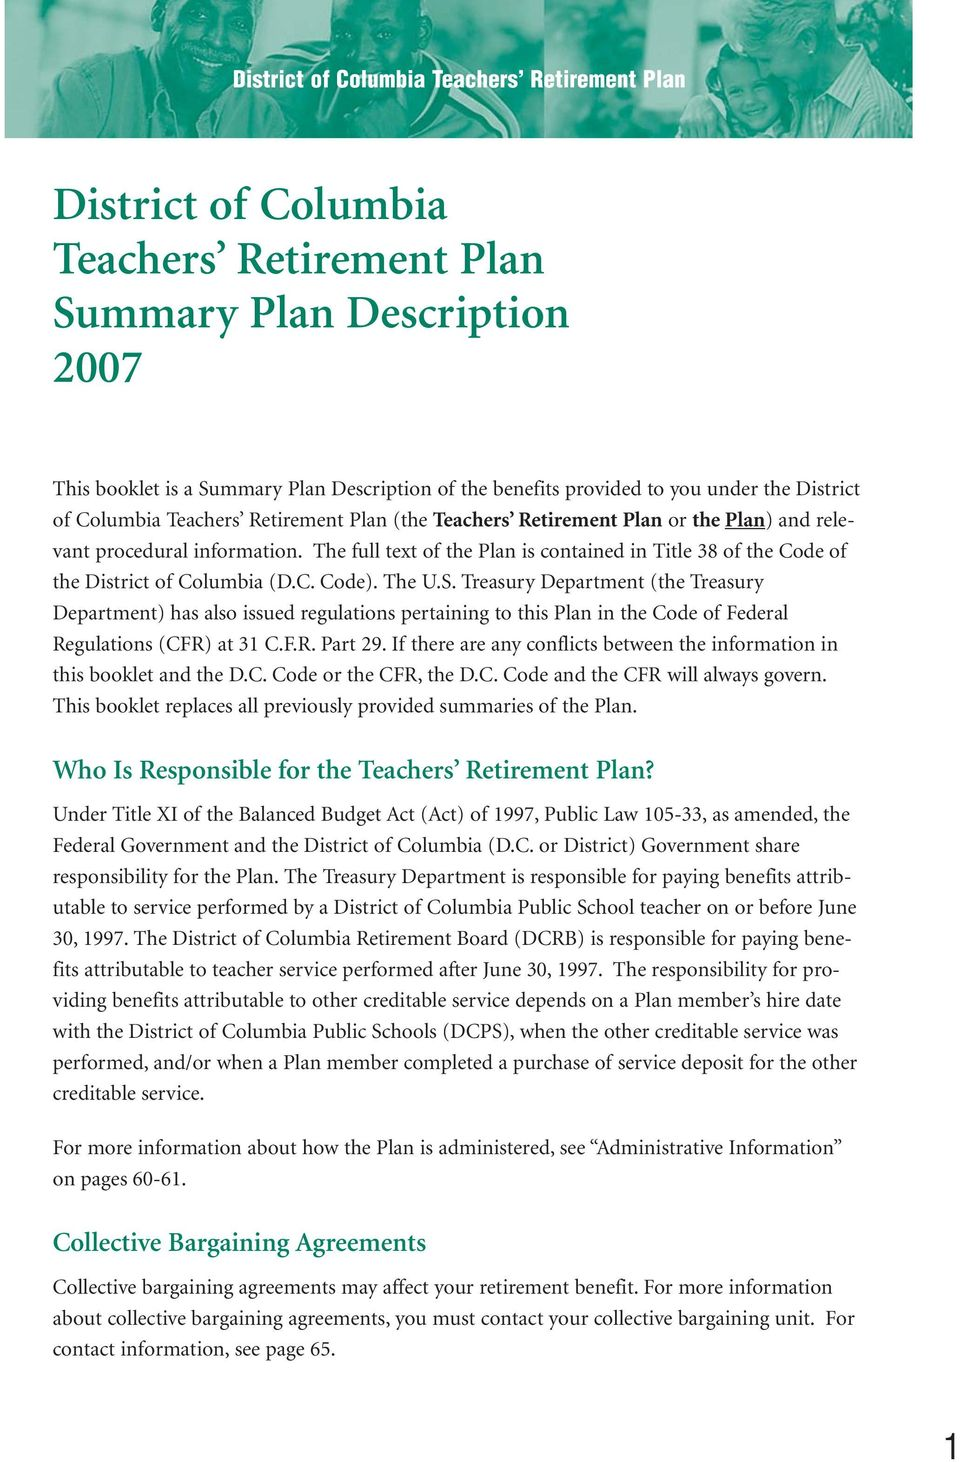 The U.S. Treasury Department (the Treasury Department) has also issued regulations pertaining to this Plan in the Code of Federal Regulations (CFR) at 31 C.F.R. Part 29.